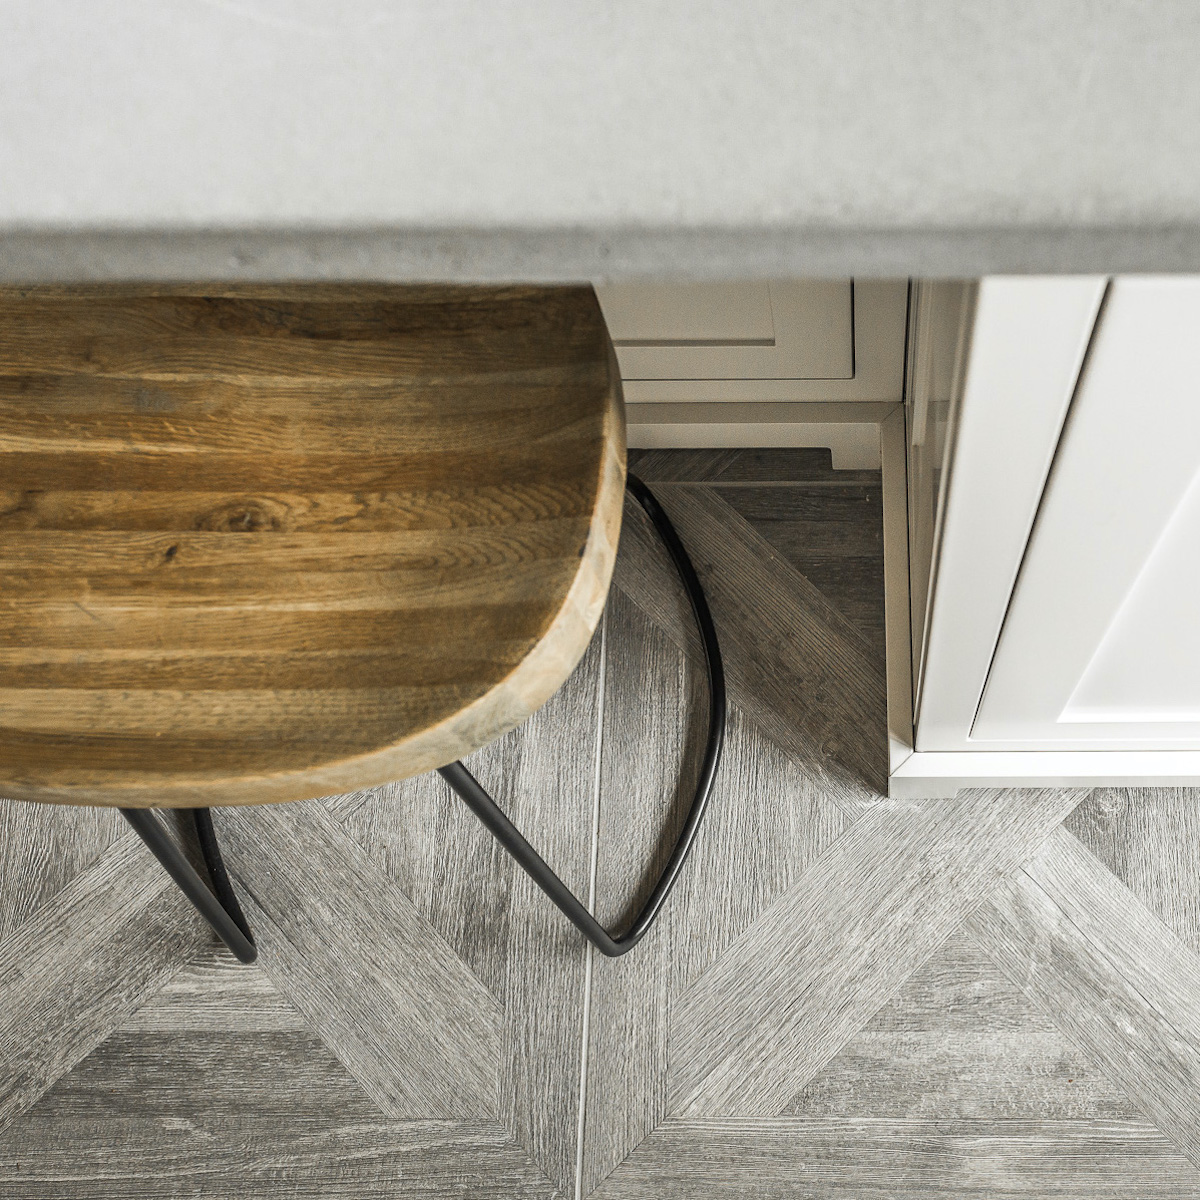 hb-design-inc-interior-design-wood-stool-2